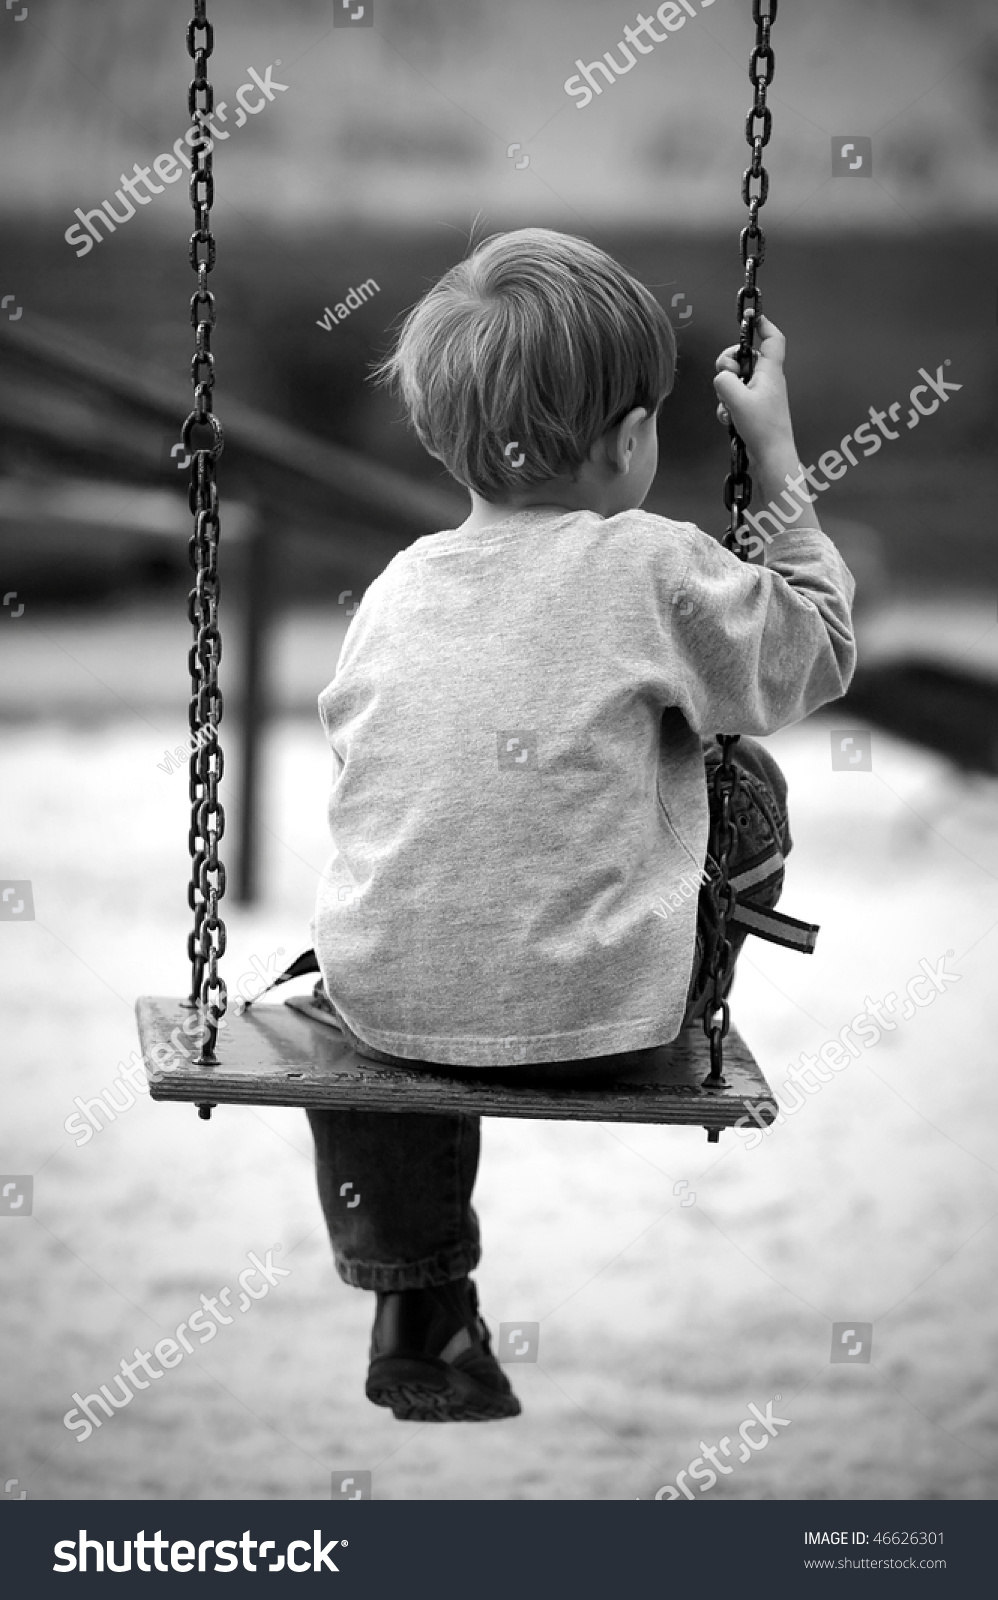 Lonely Boy Images Black And White Photography